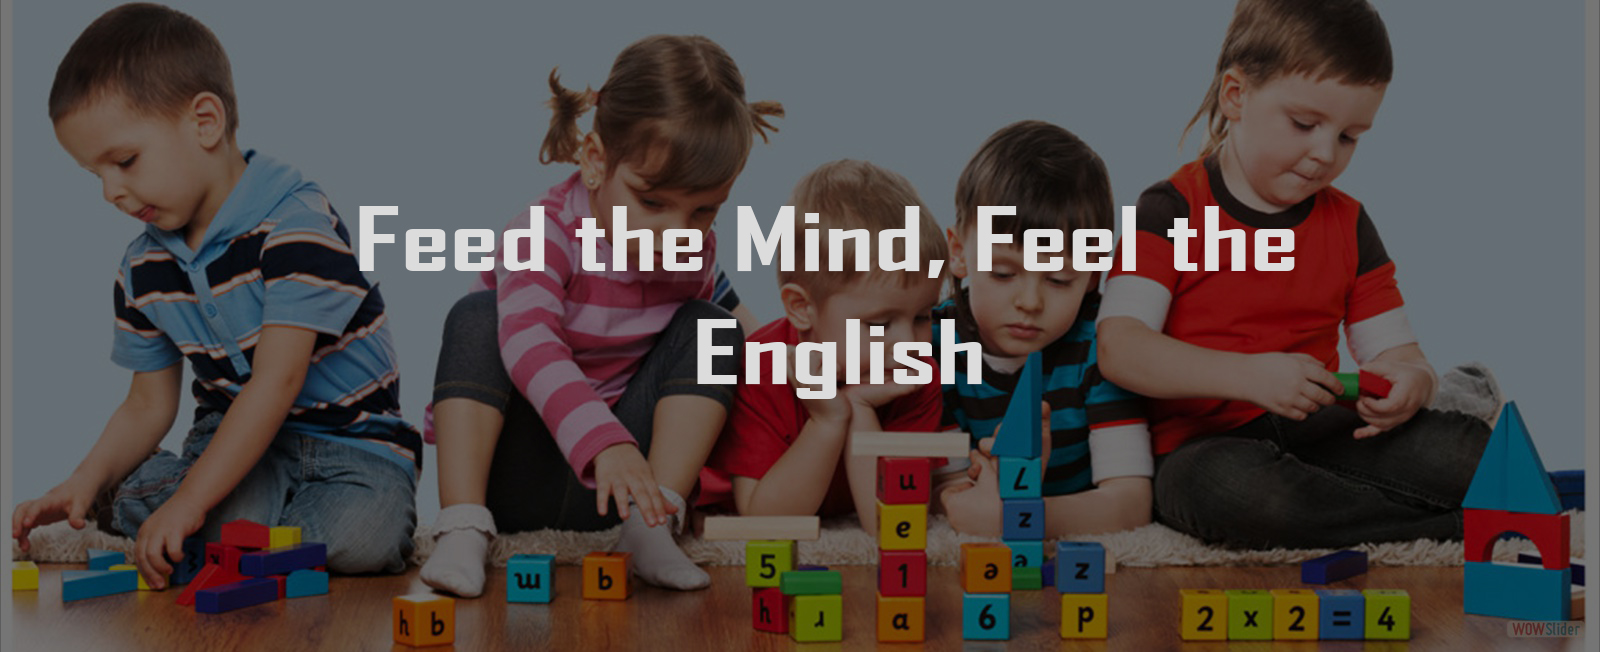 Ptc Elite_Feed the mind,Feed the english